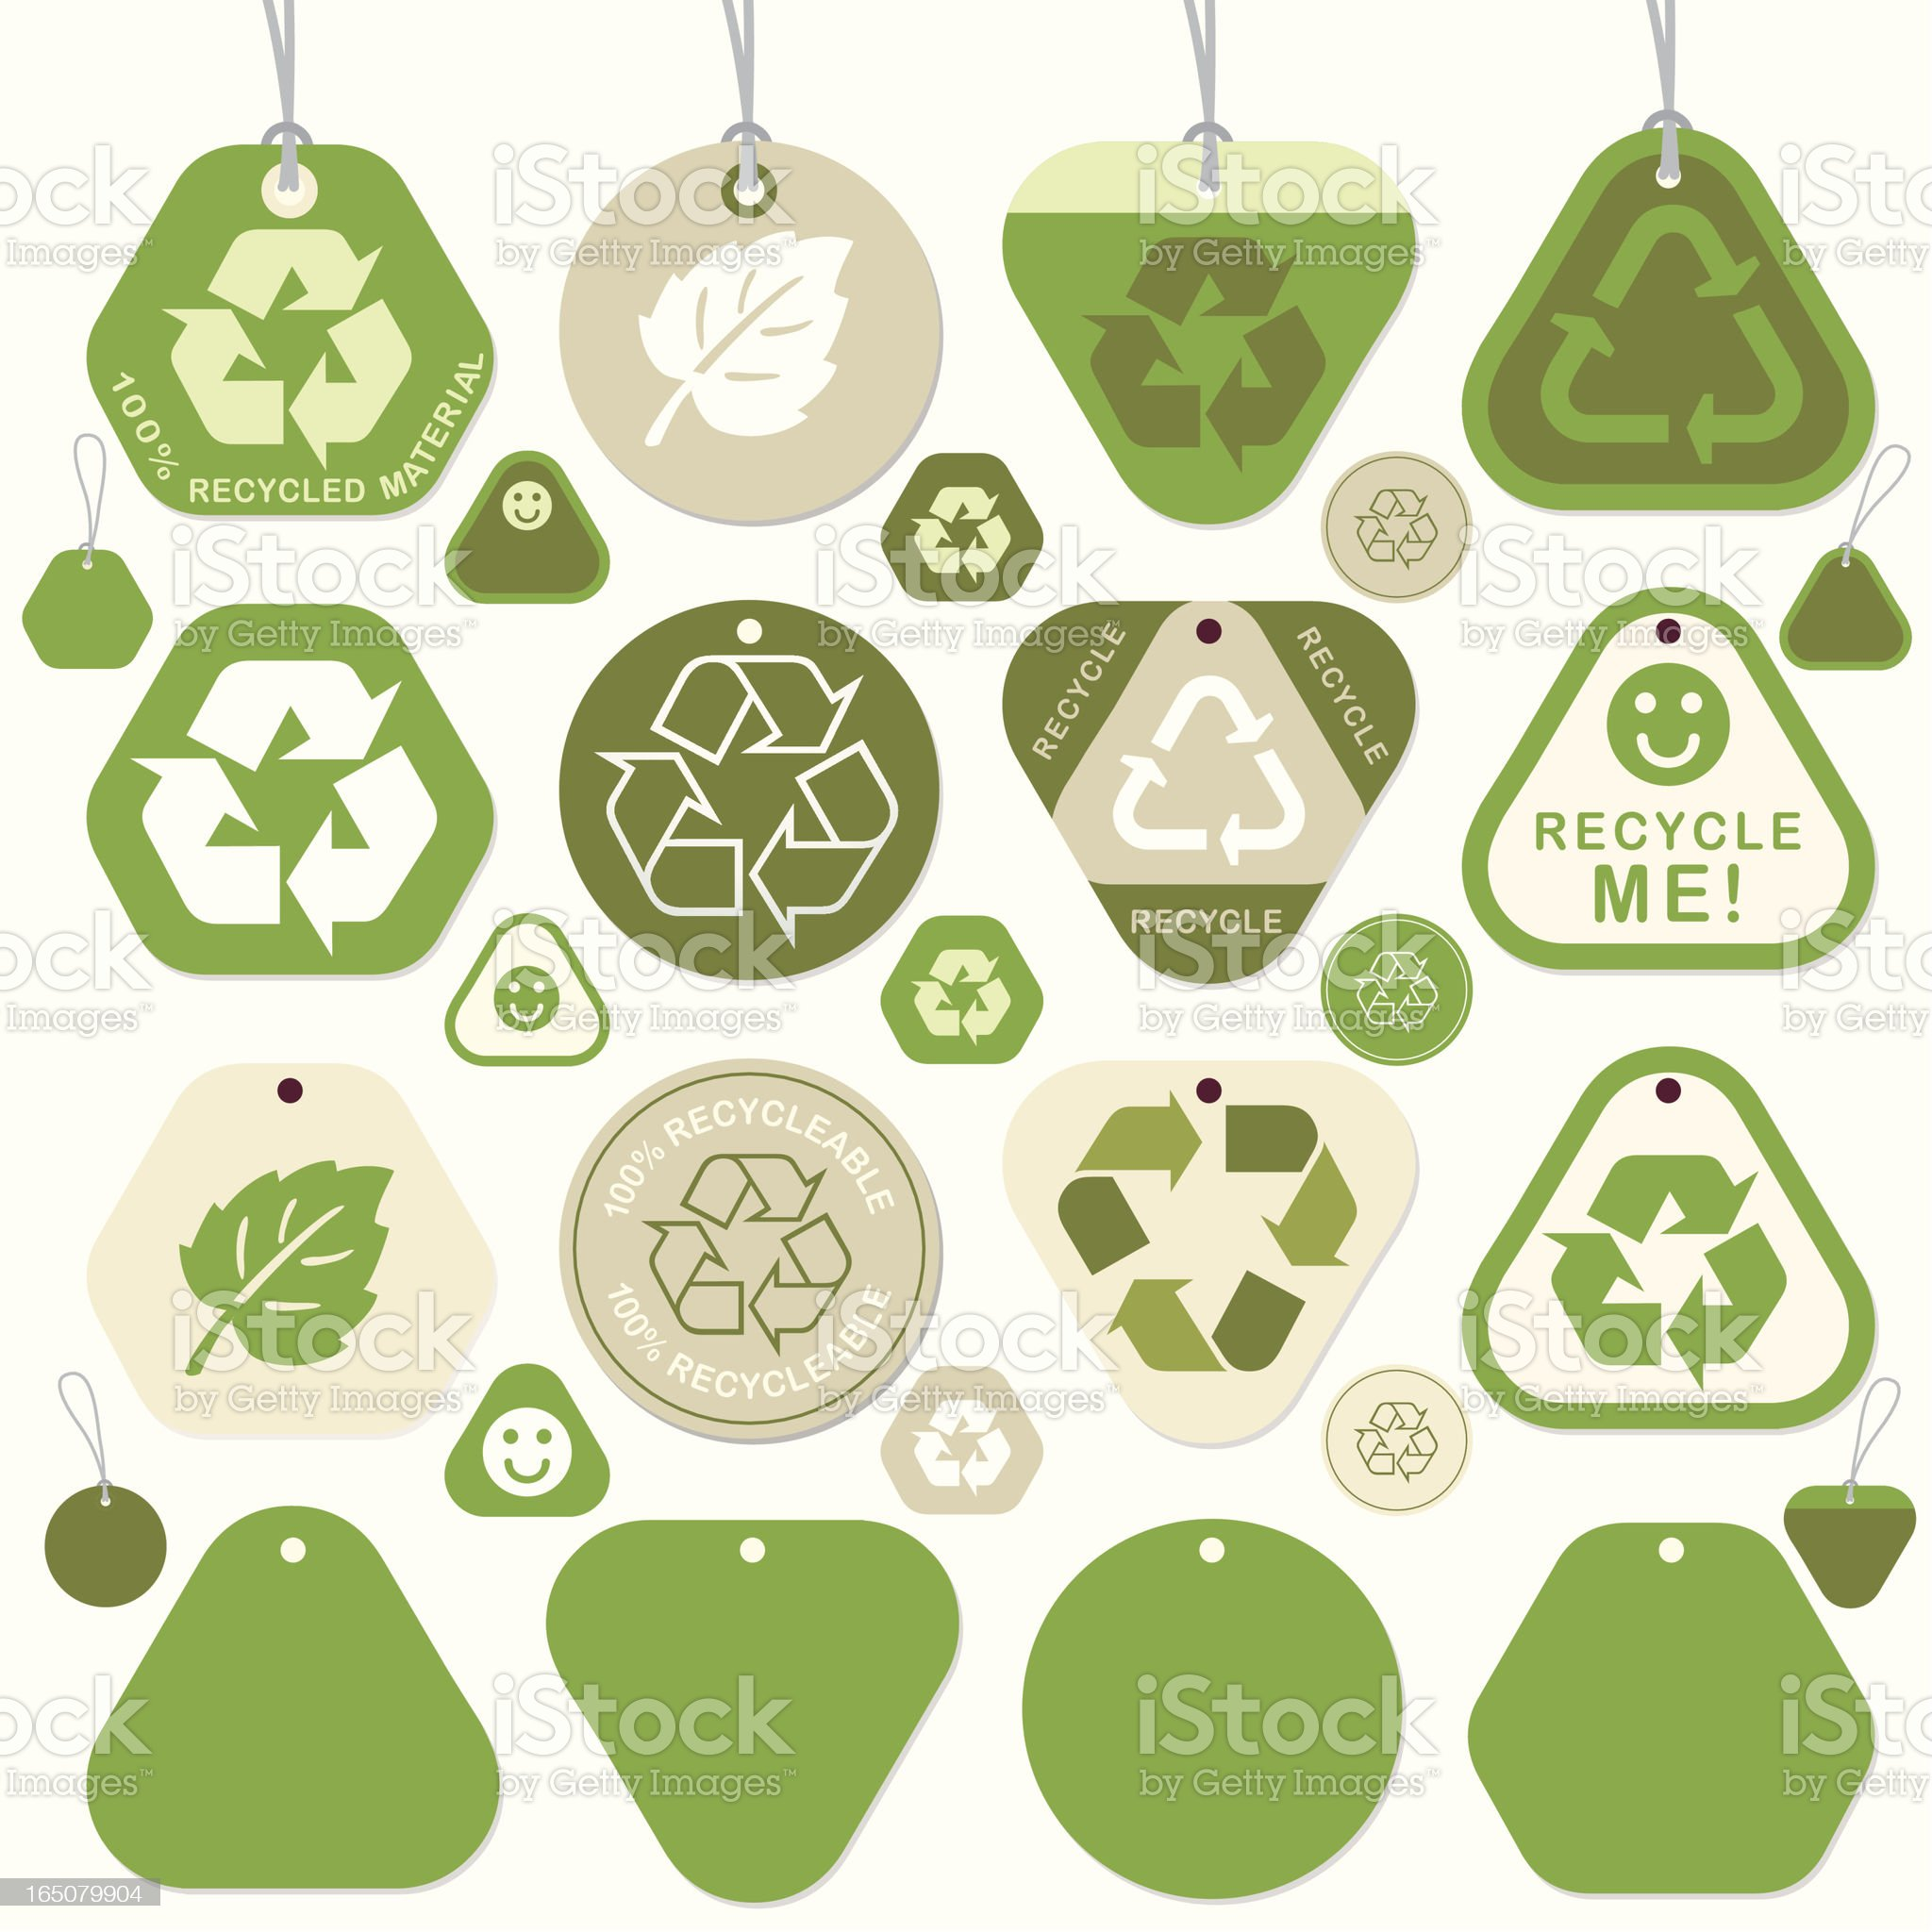 Round Recycle Tags royalty-free stock vector art